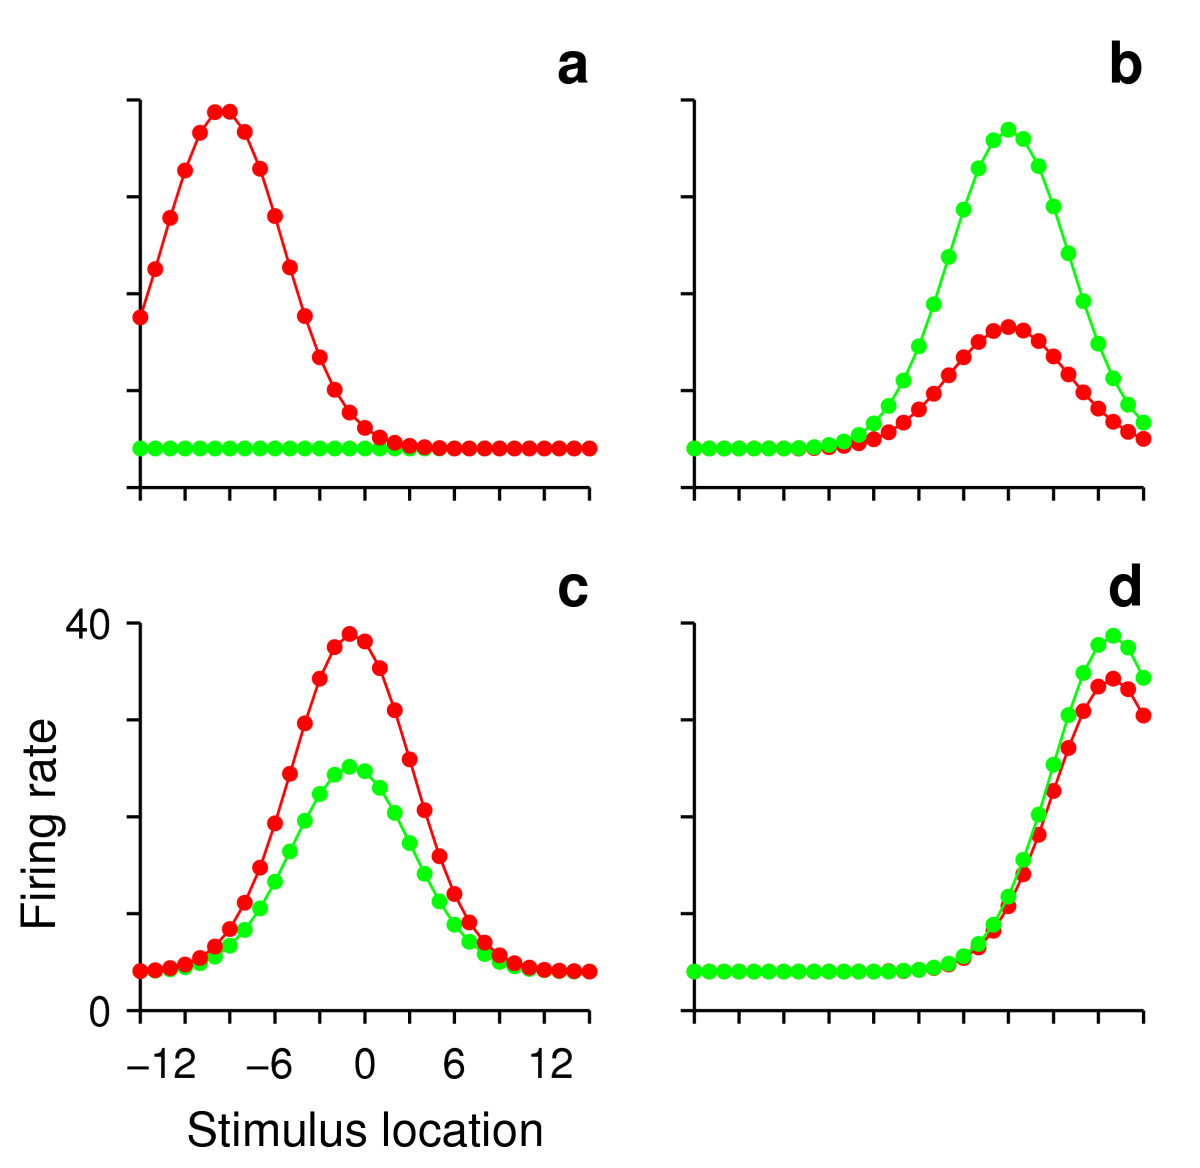 https://static-content.springer.com/image/art%3A10.1186%2F1471-2202-5-47/MediaObjects/12868_2004_Article_123_Fig2_HTML.jpg